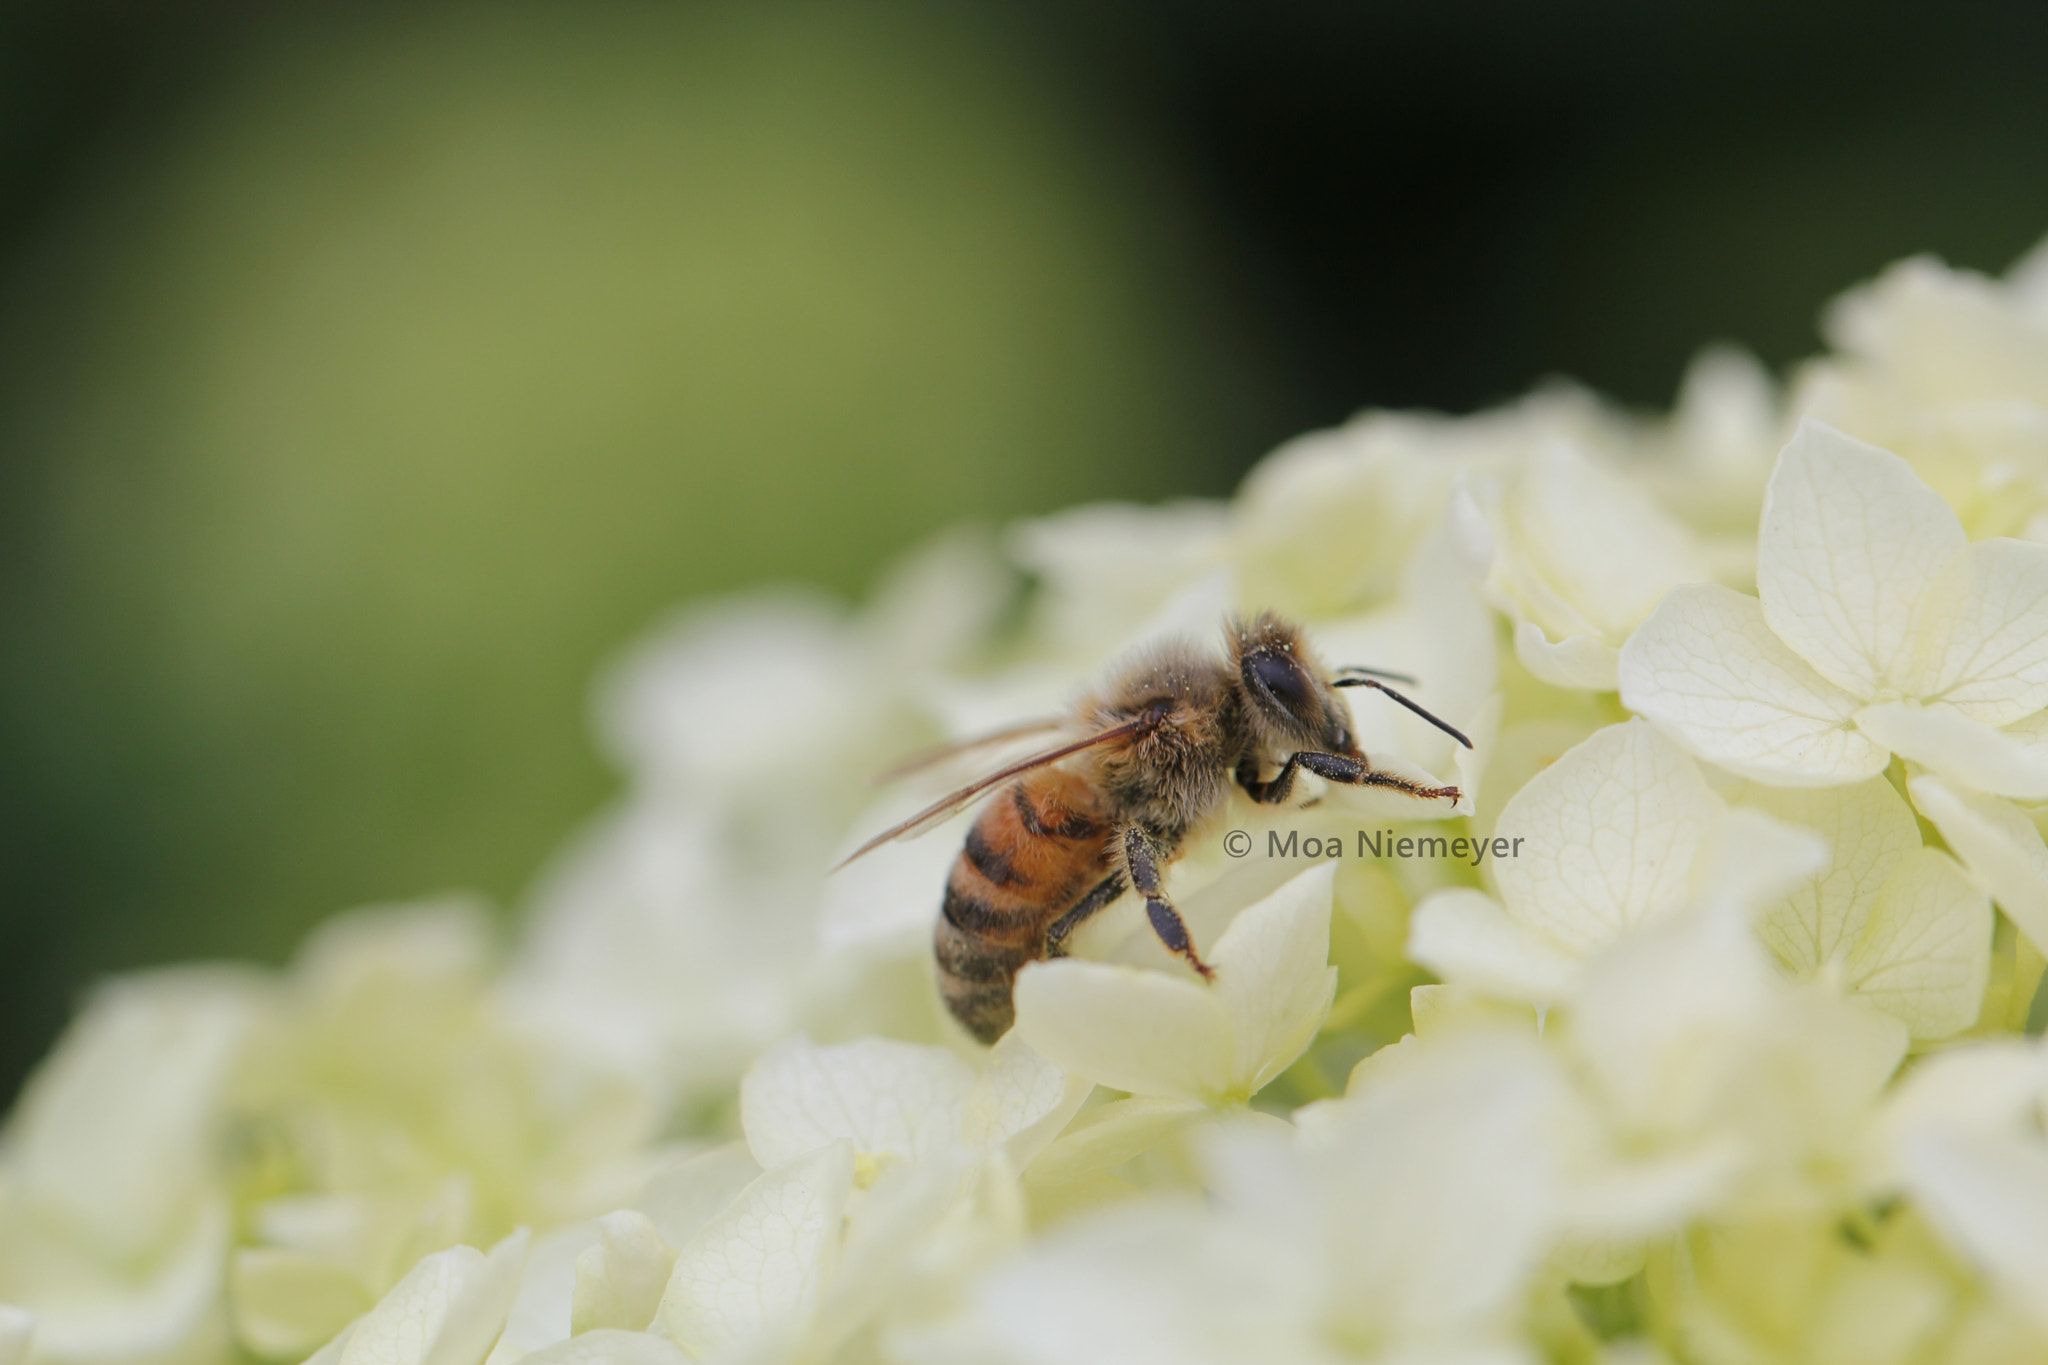 Photograph Bee by Moa Niemeyer on 500px